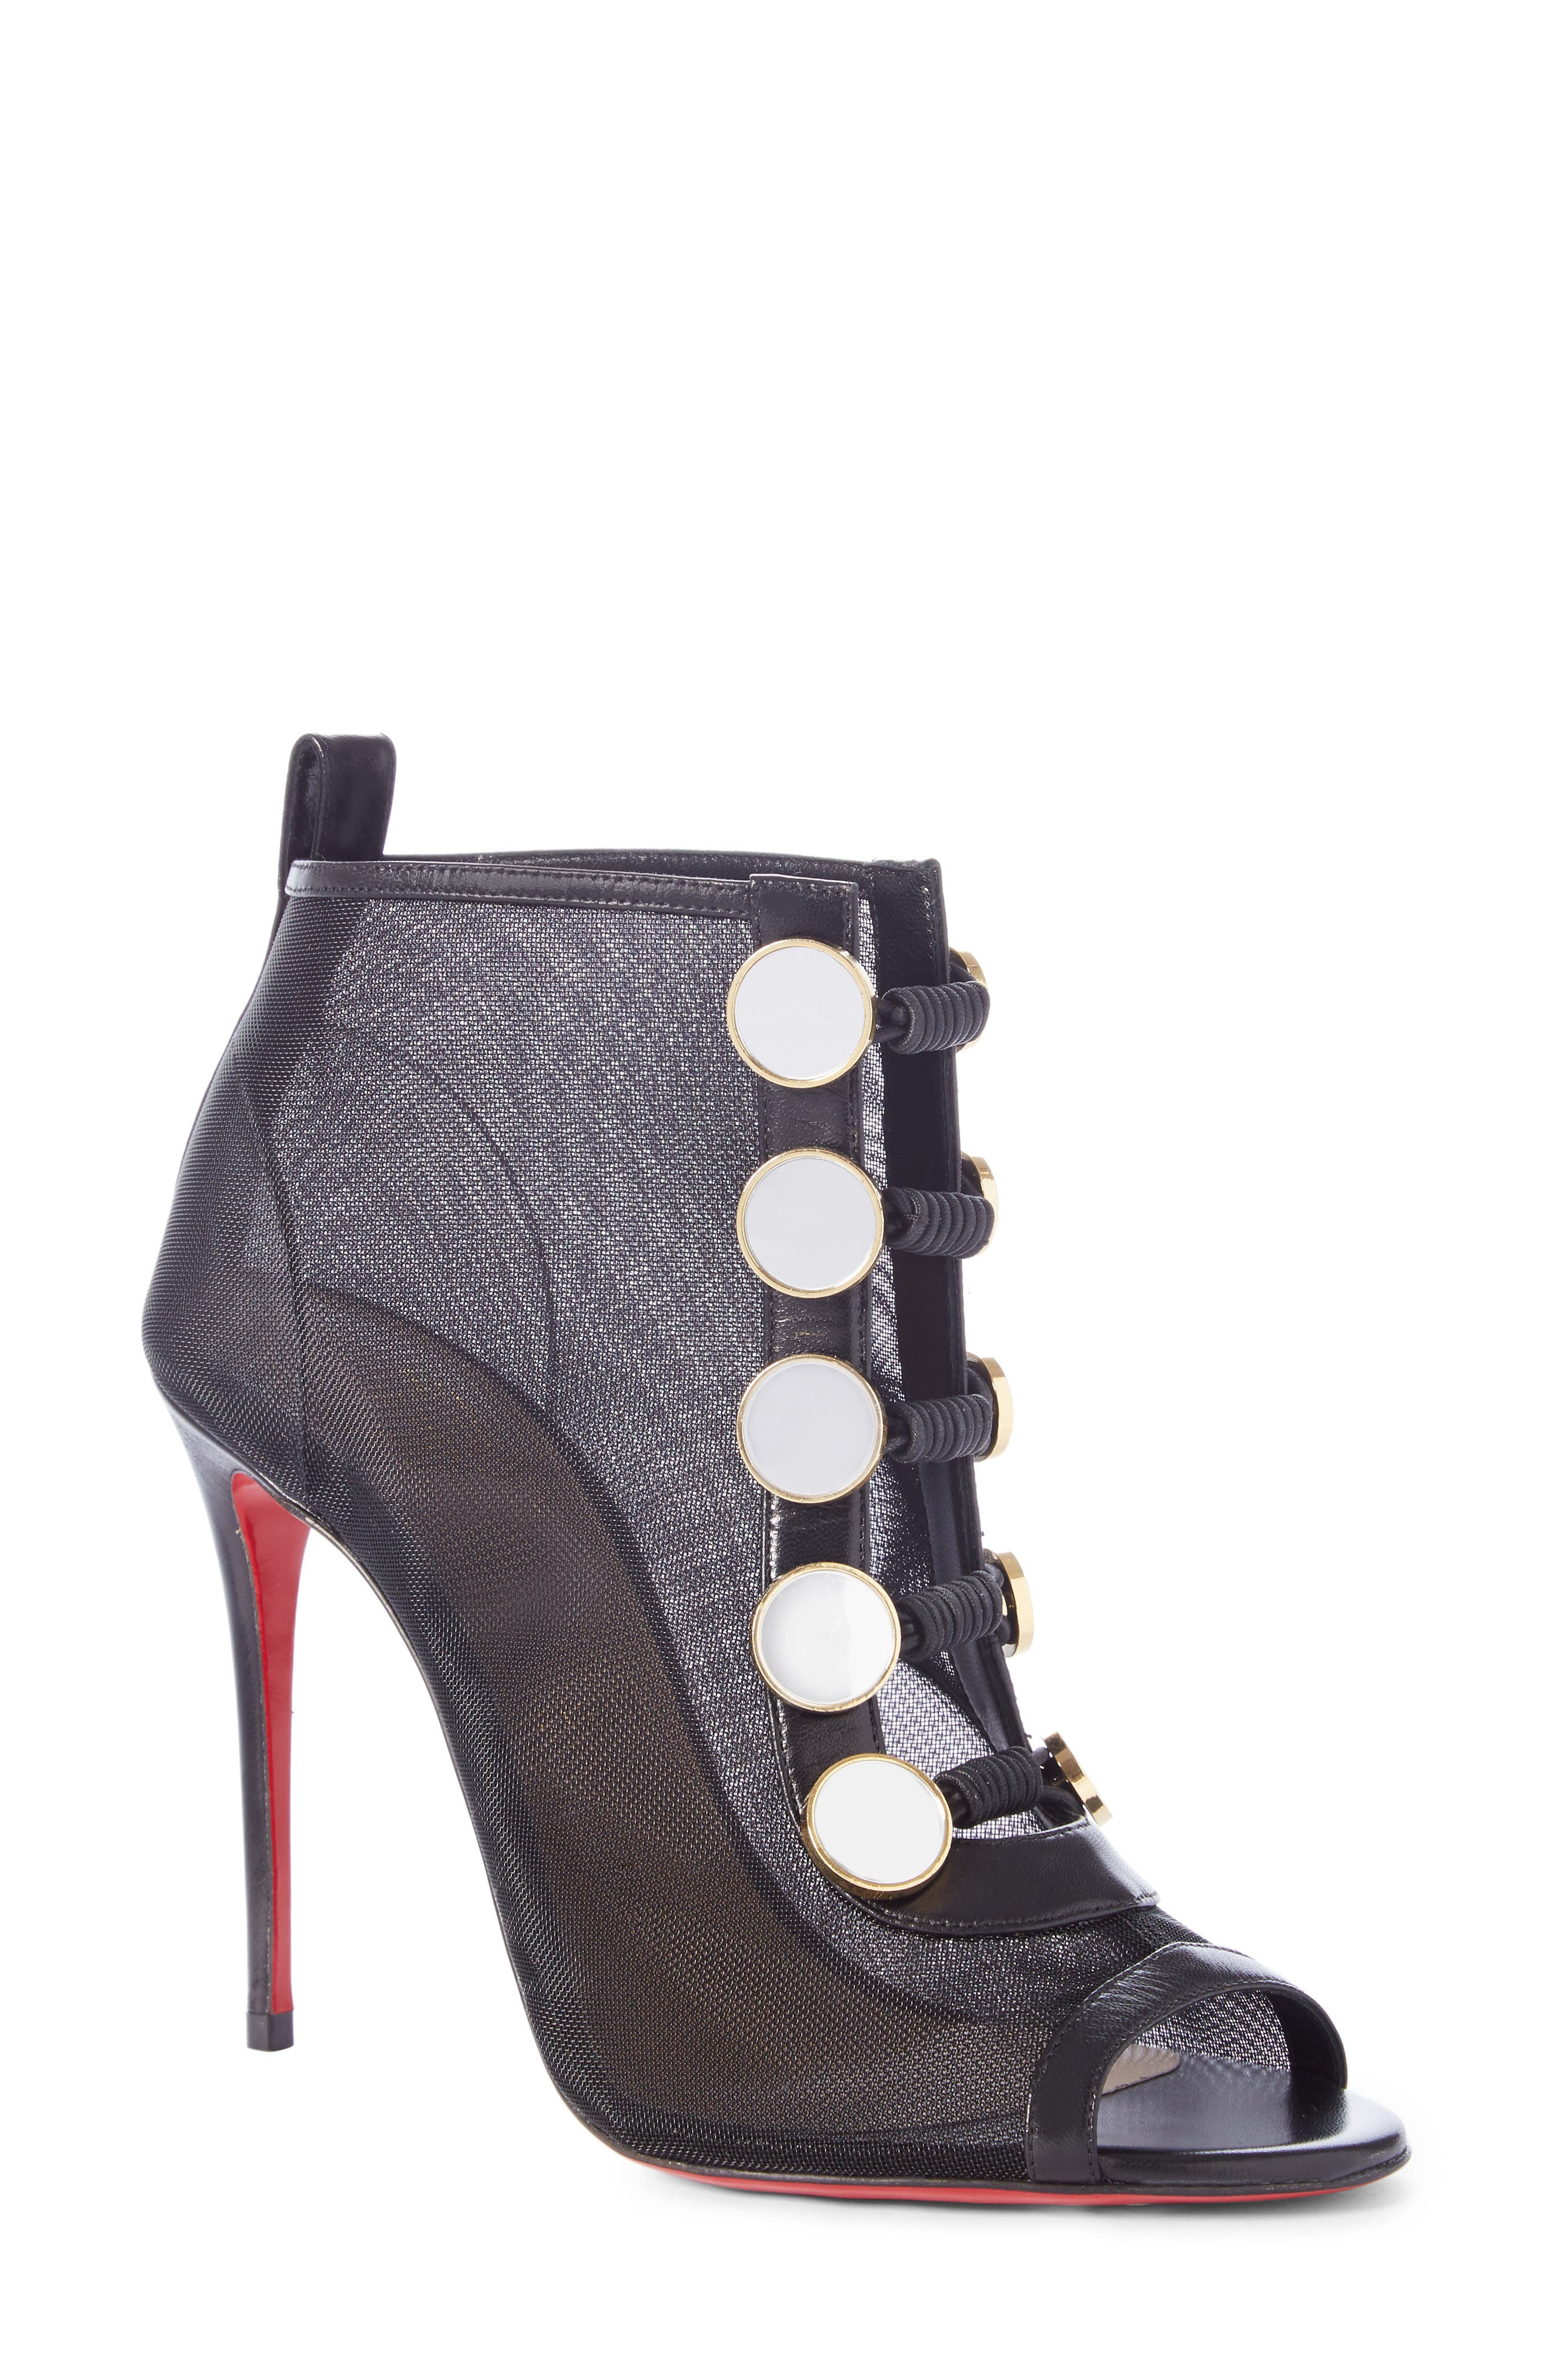 CHRISTIAN LOUBOUTIN, Marika Open Toe Bootie, Main thumbnail 1, color, BLACK